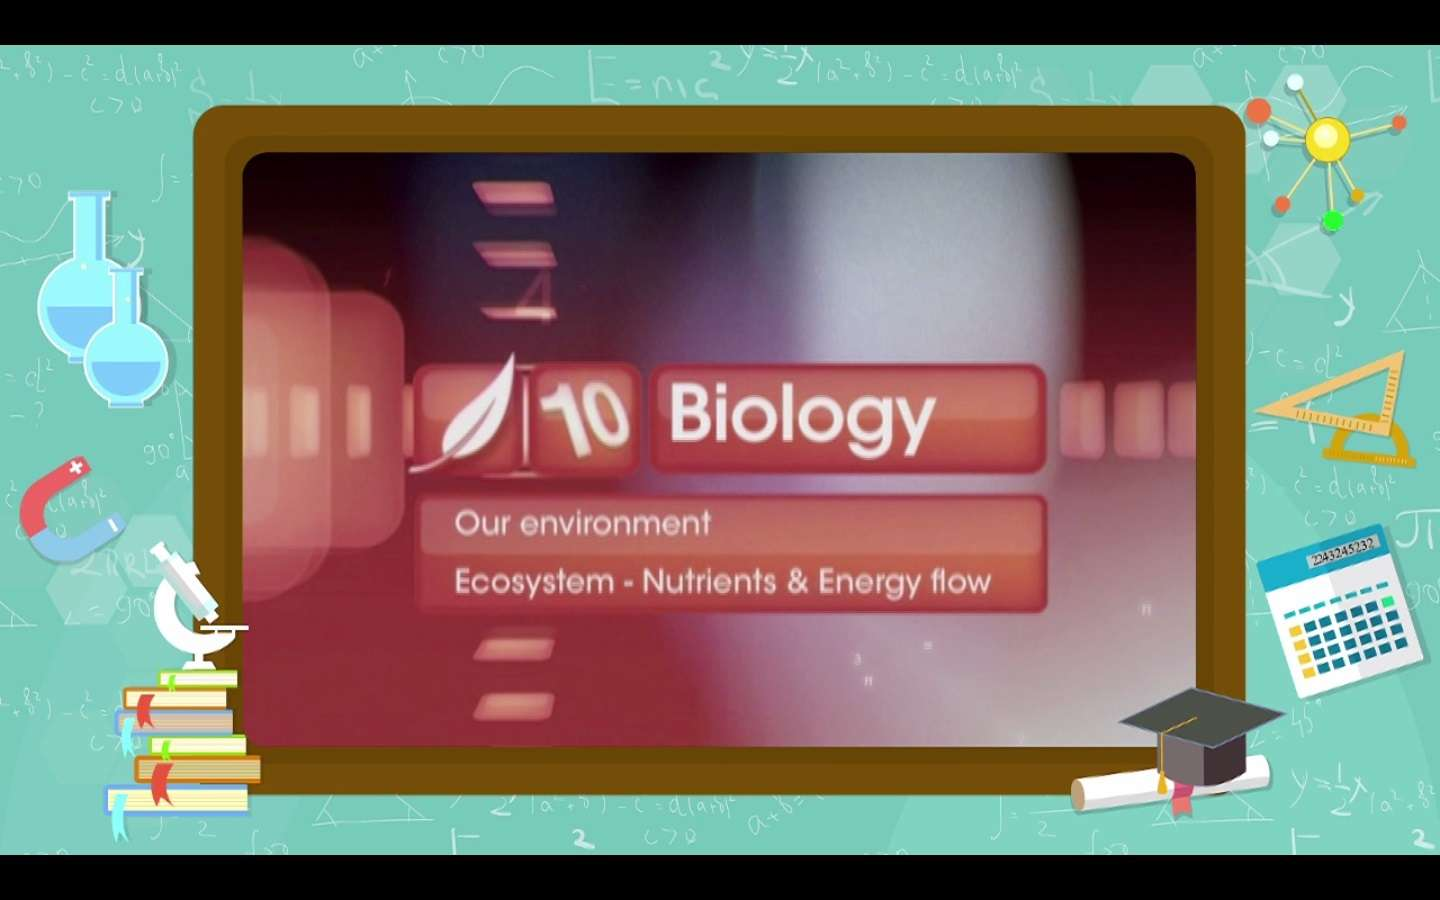 Ecosystem - Nutrients and Energy Flow